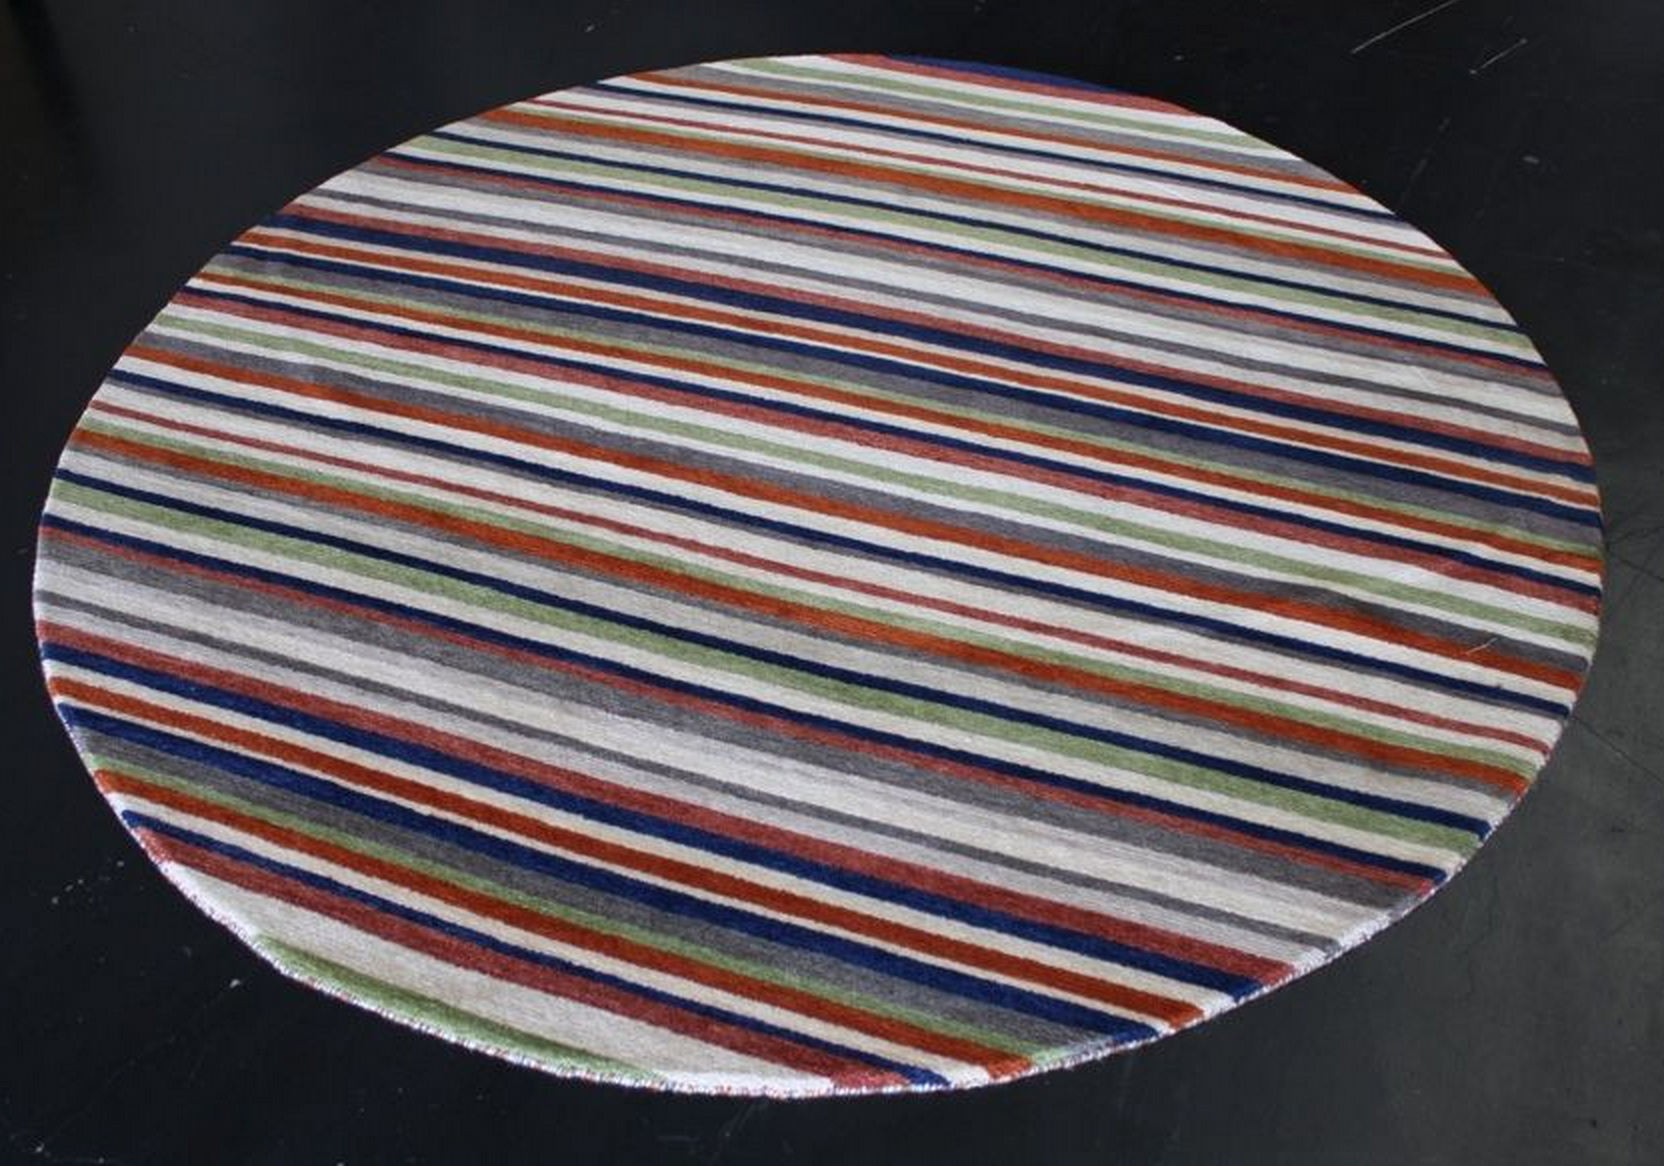 All Our Circular Area Rugs Below Have Been Custom Made For Our Clients.  Should You Have Any Questions Regarding Your Own Custom Made Luxury Round  Floor Rug ...